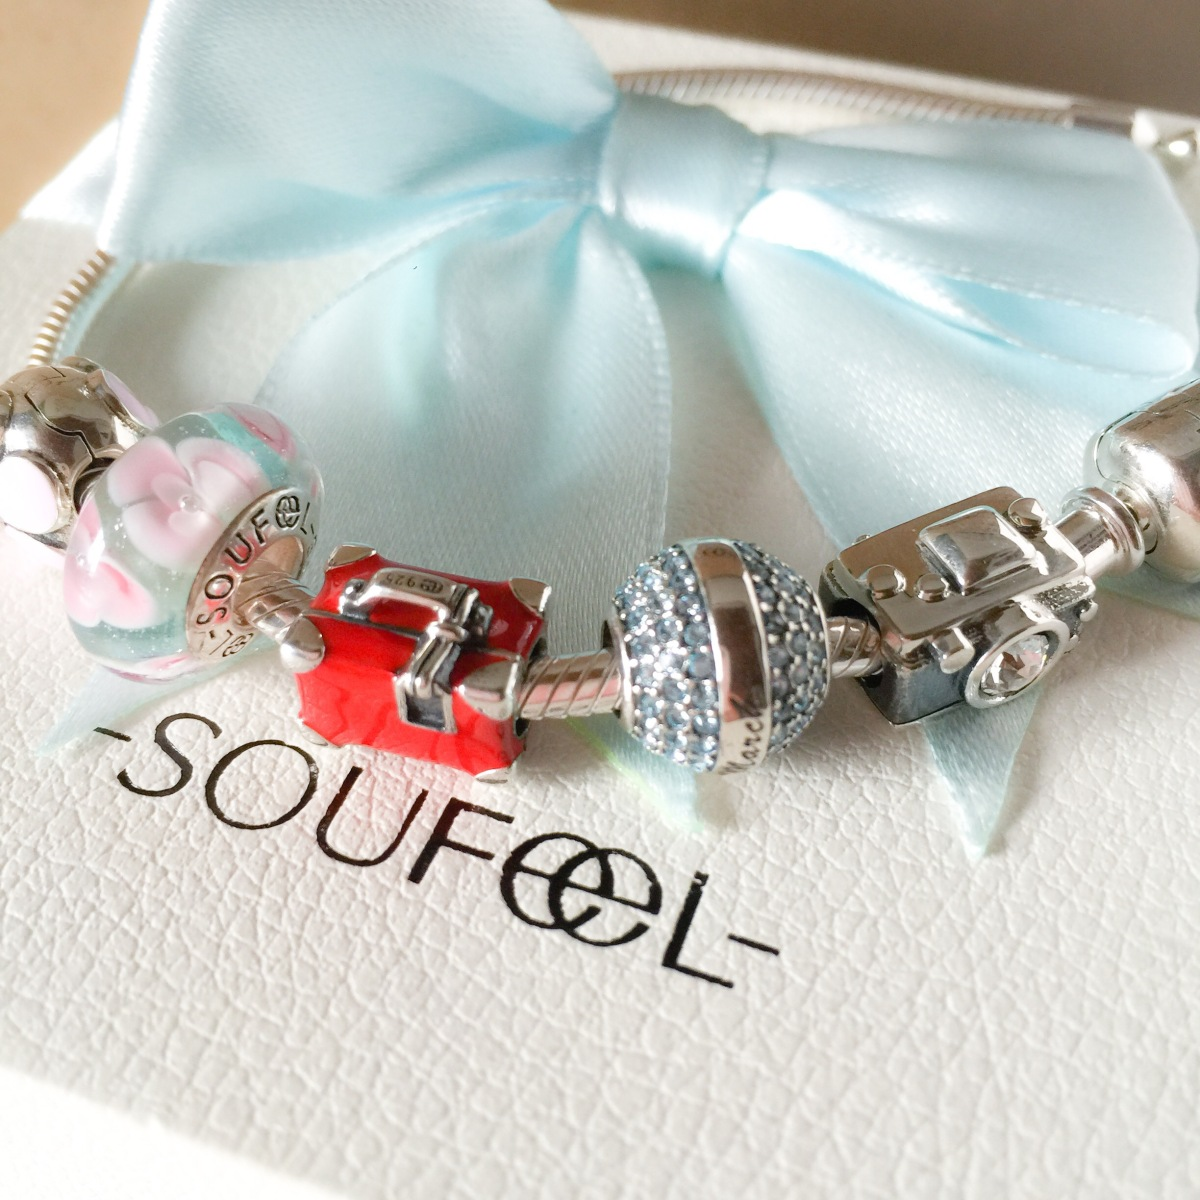 Soufeel jewels, bracciali con charms